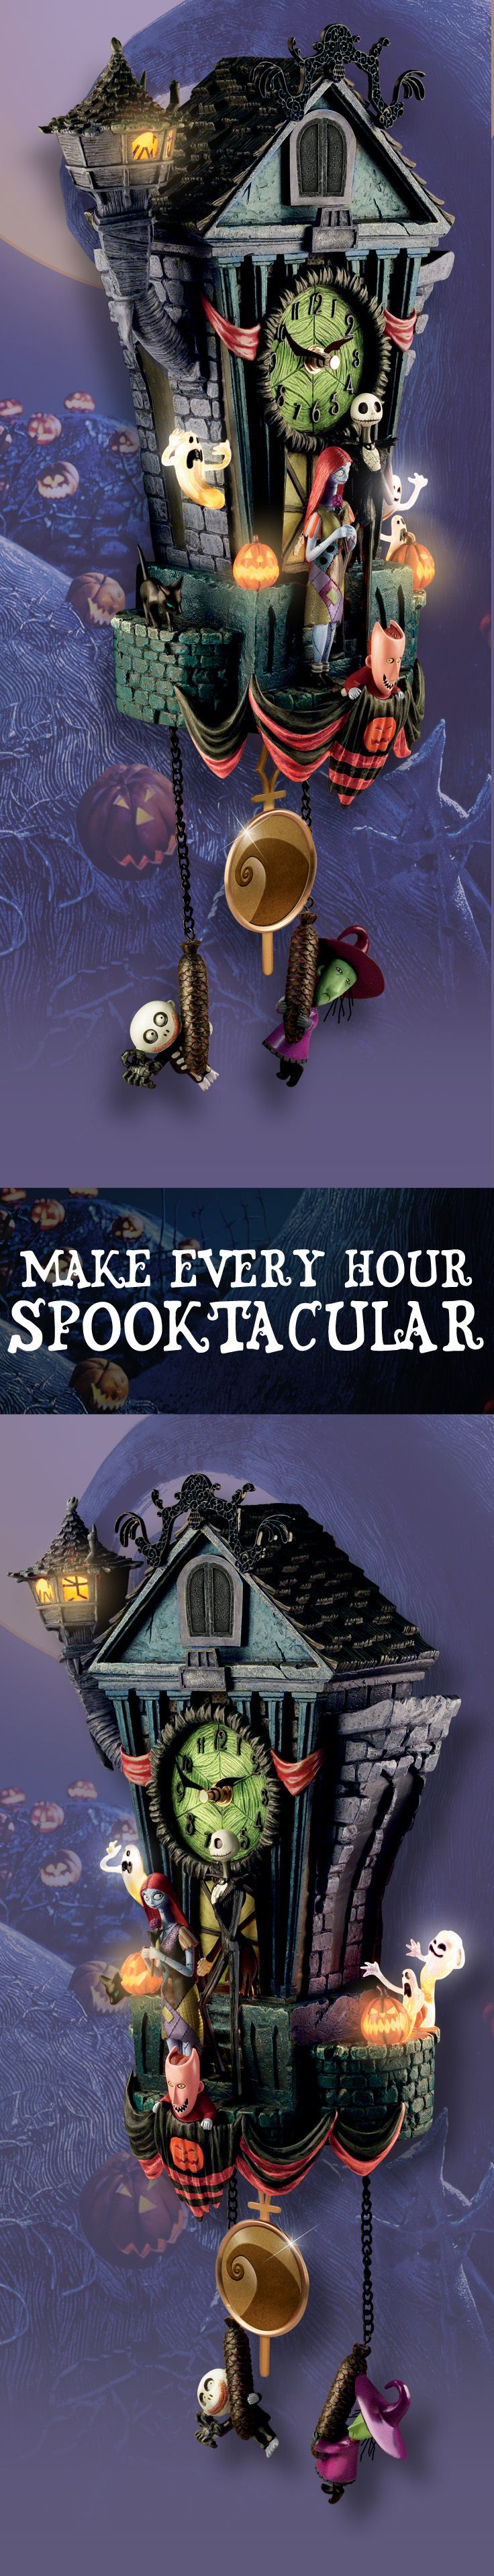 Who is your favorite character from Tim Burton's now-iconic film, The Nightmare Before Christmas: Jack Skellington, Sally, Dr. Finkelstein, Oogie Boogie, or another of Halloweentown's delightful denizens? They are all here to make every hour spooktacular with this Nightmare Before Christmas cuckoo clock.